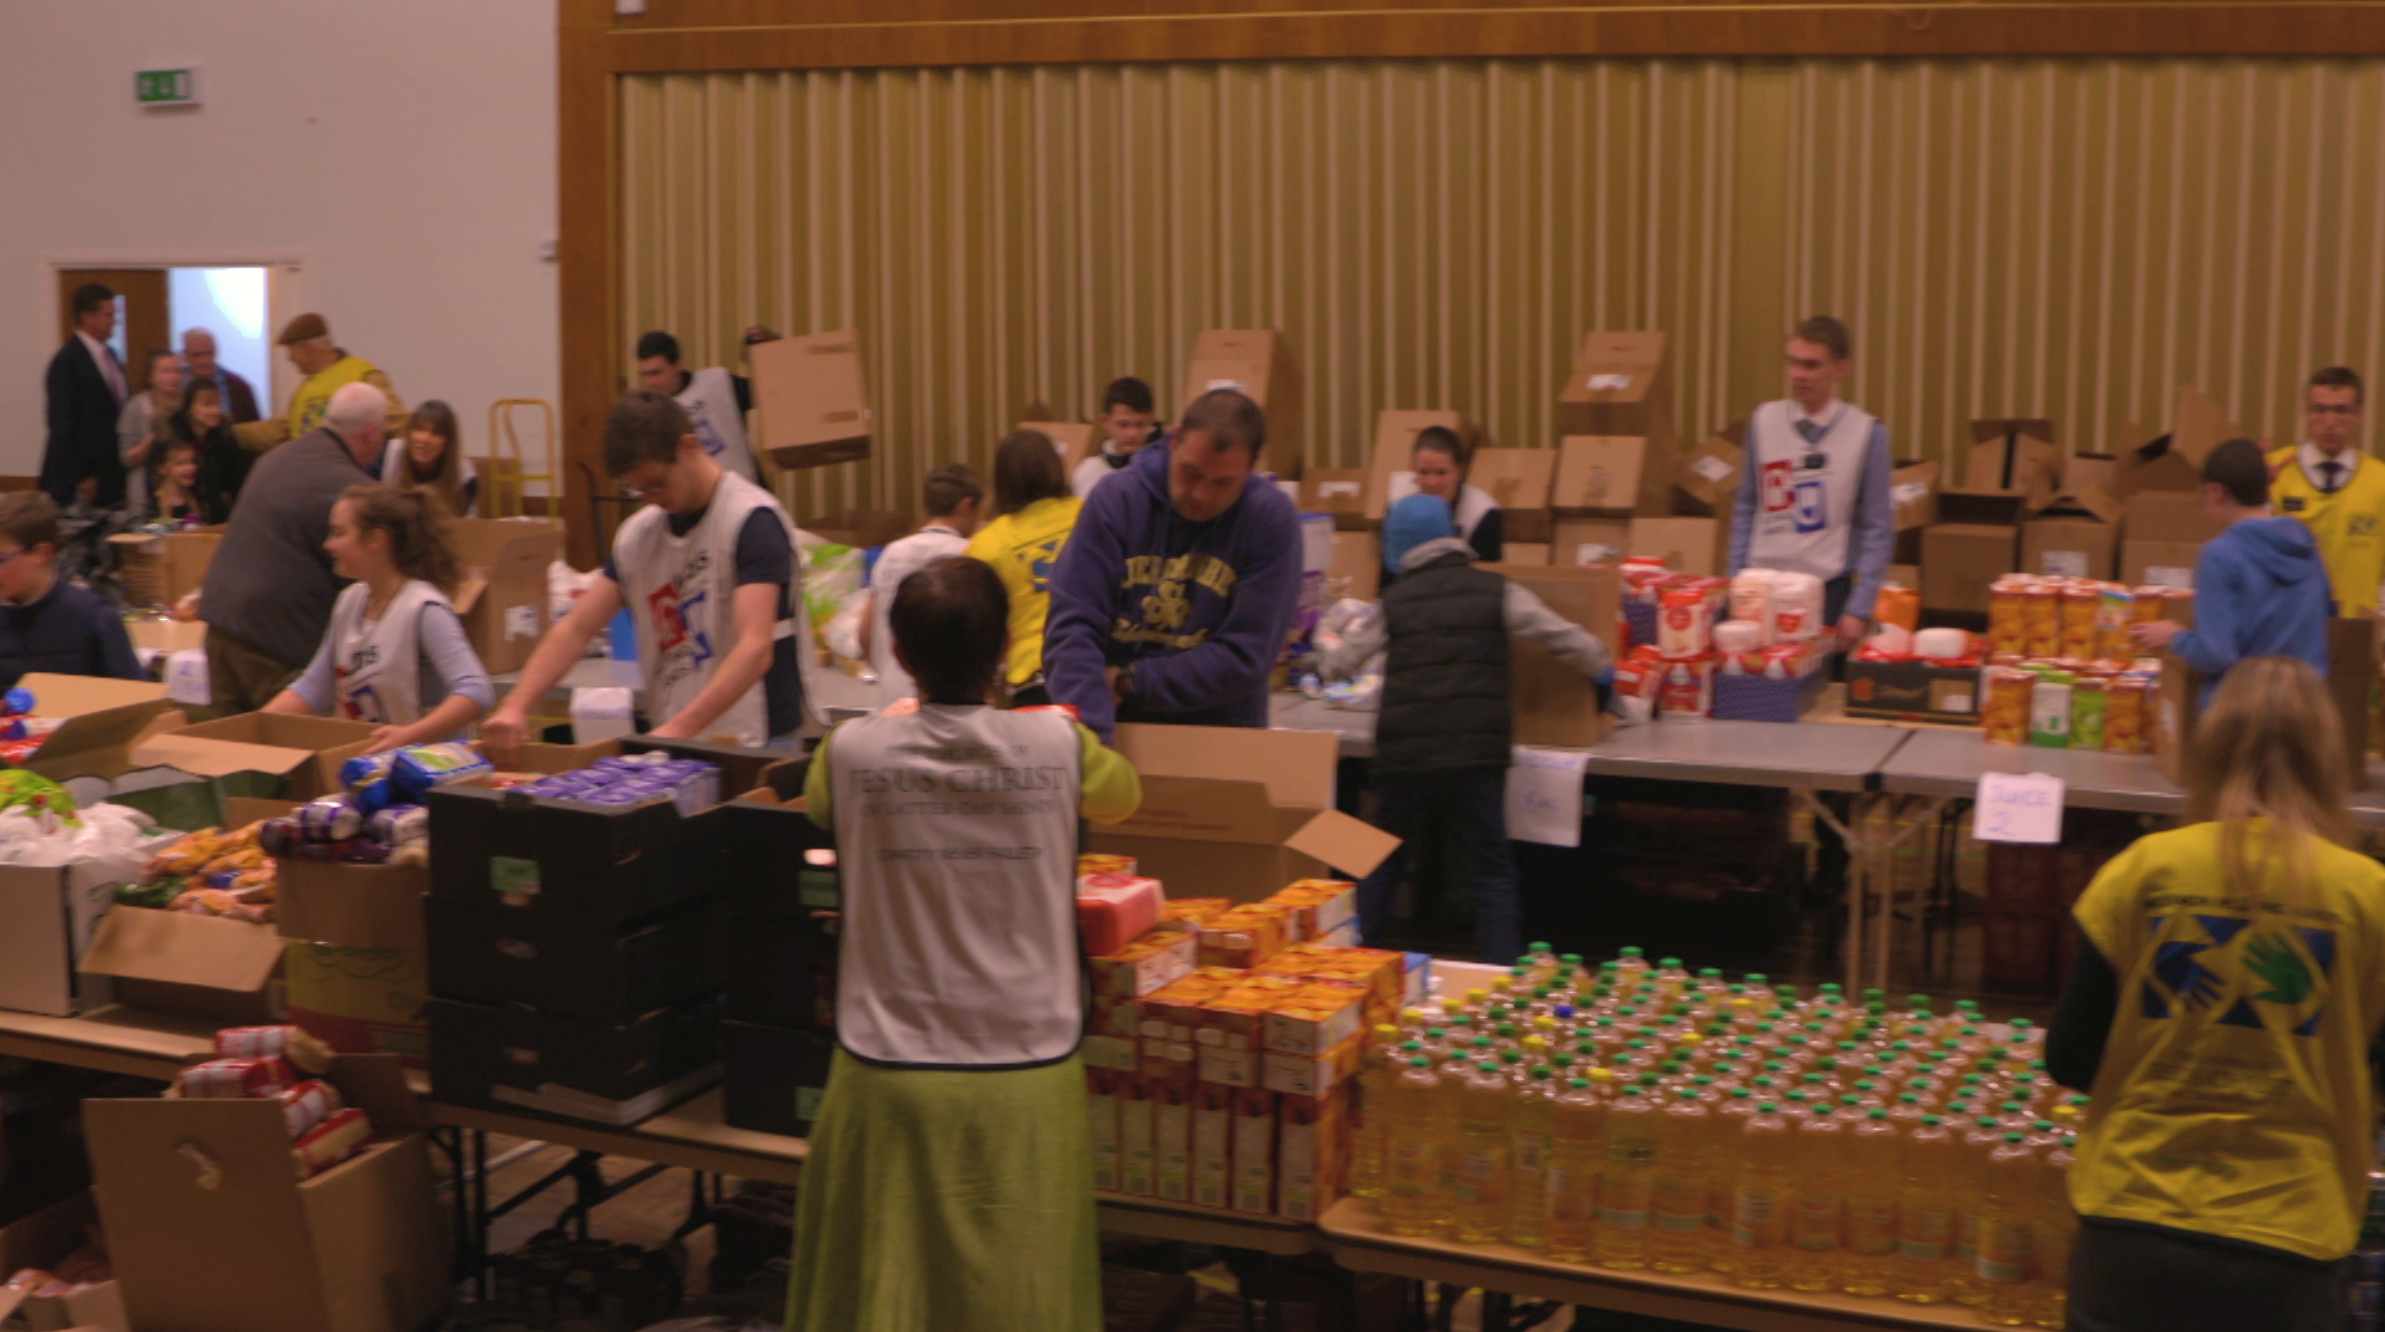 Members sorting food donations.